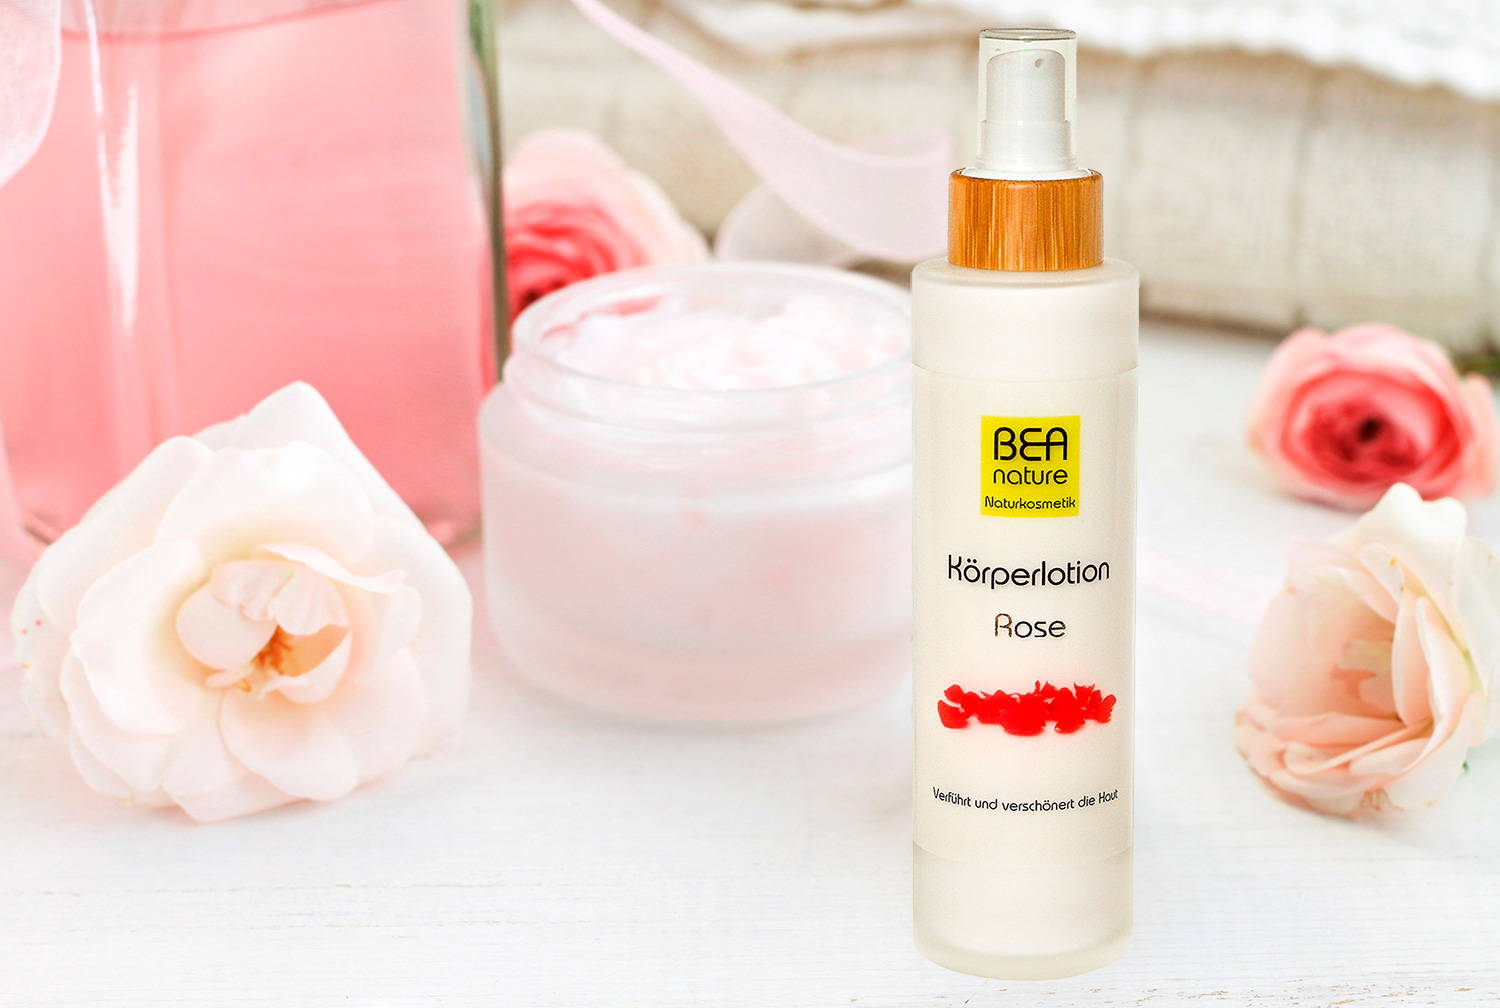 Rose Koerperlotion